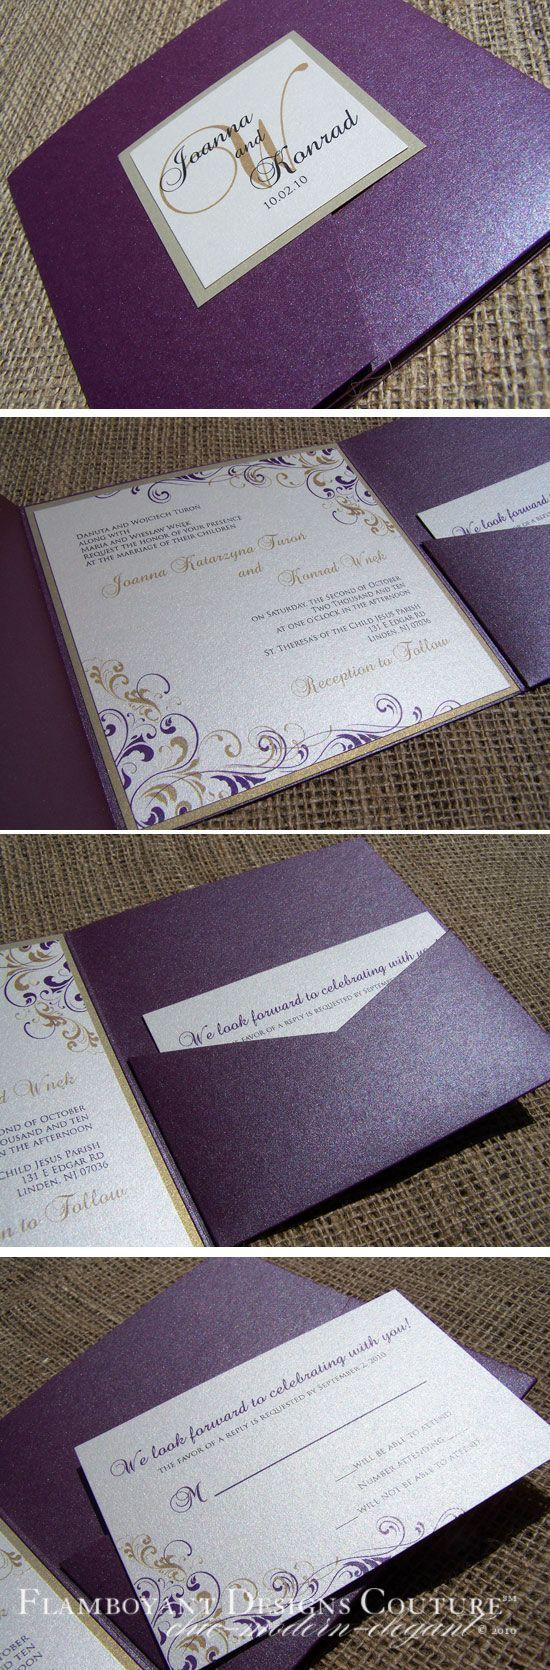 wedding invitations peacock theme%0A      best wedding invitation images on pinterest wedding plum and gold  pocket fold invitations the wedding